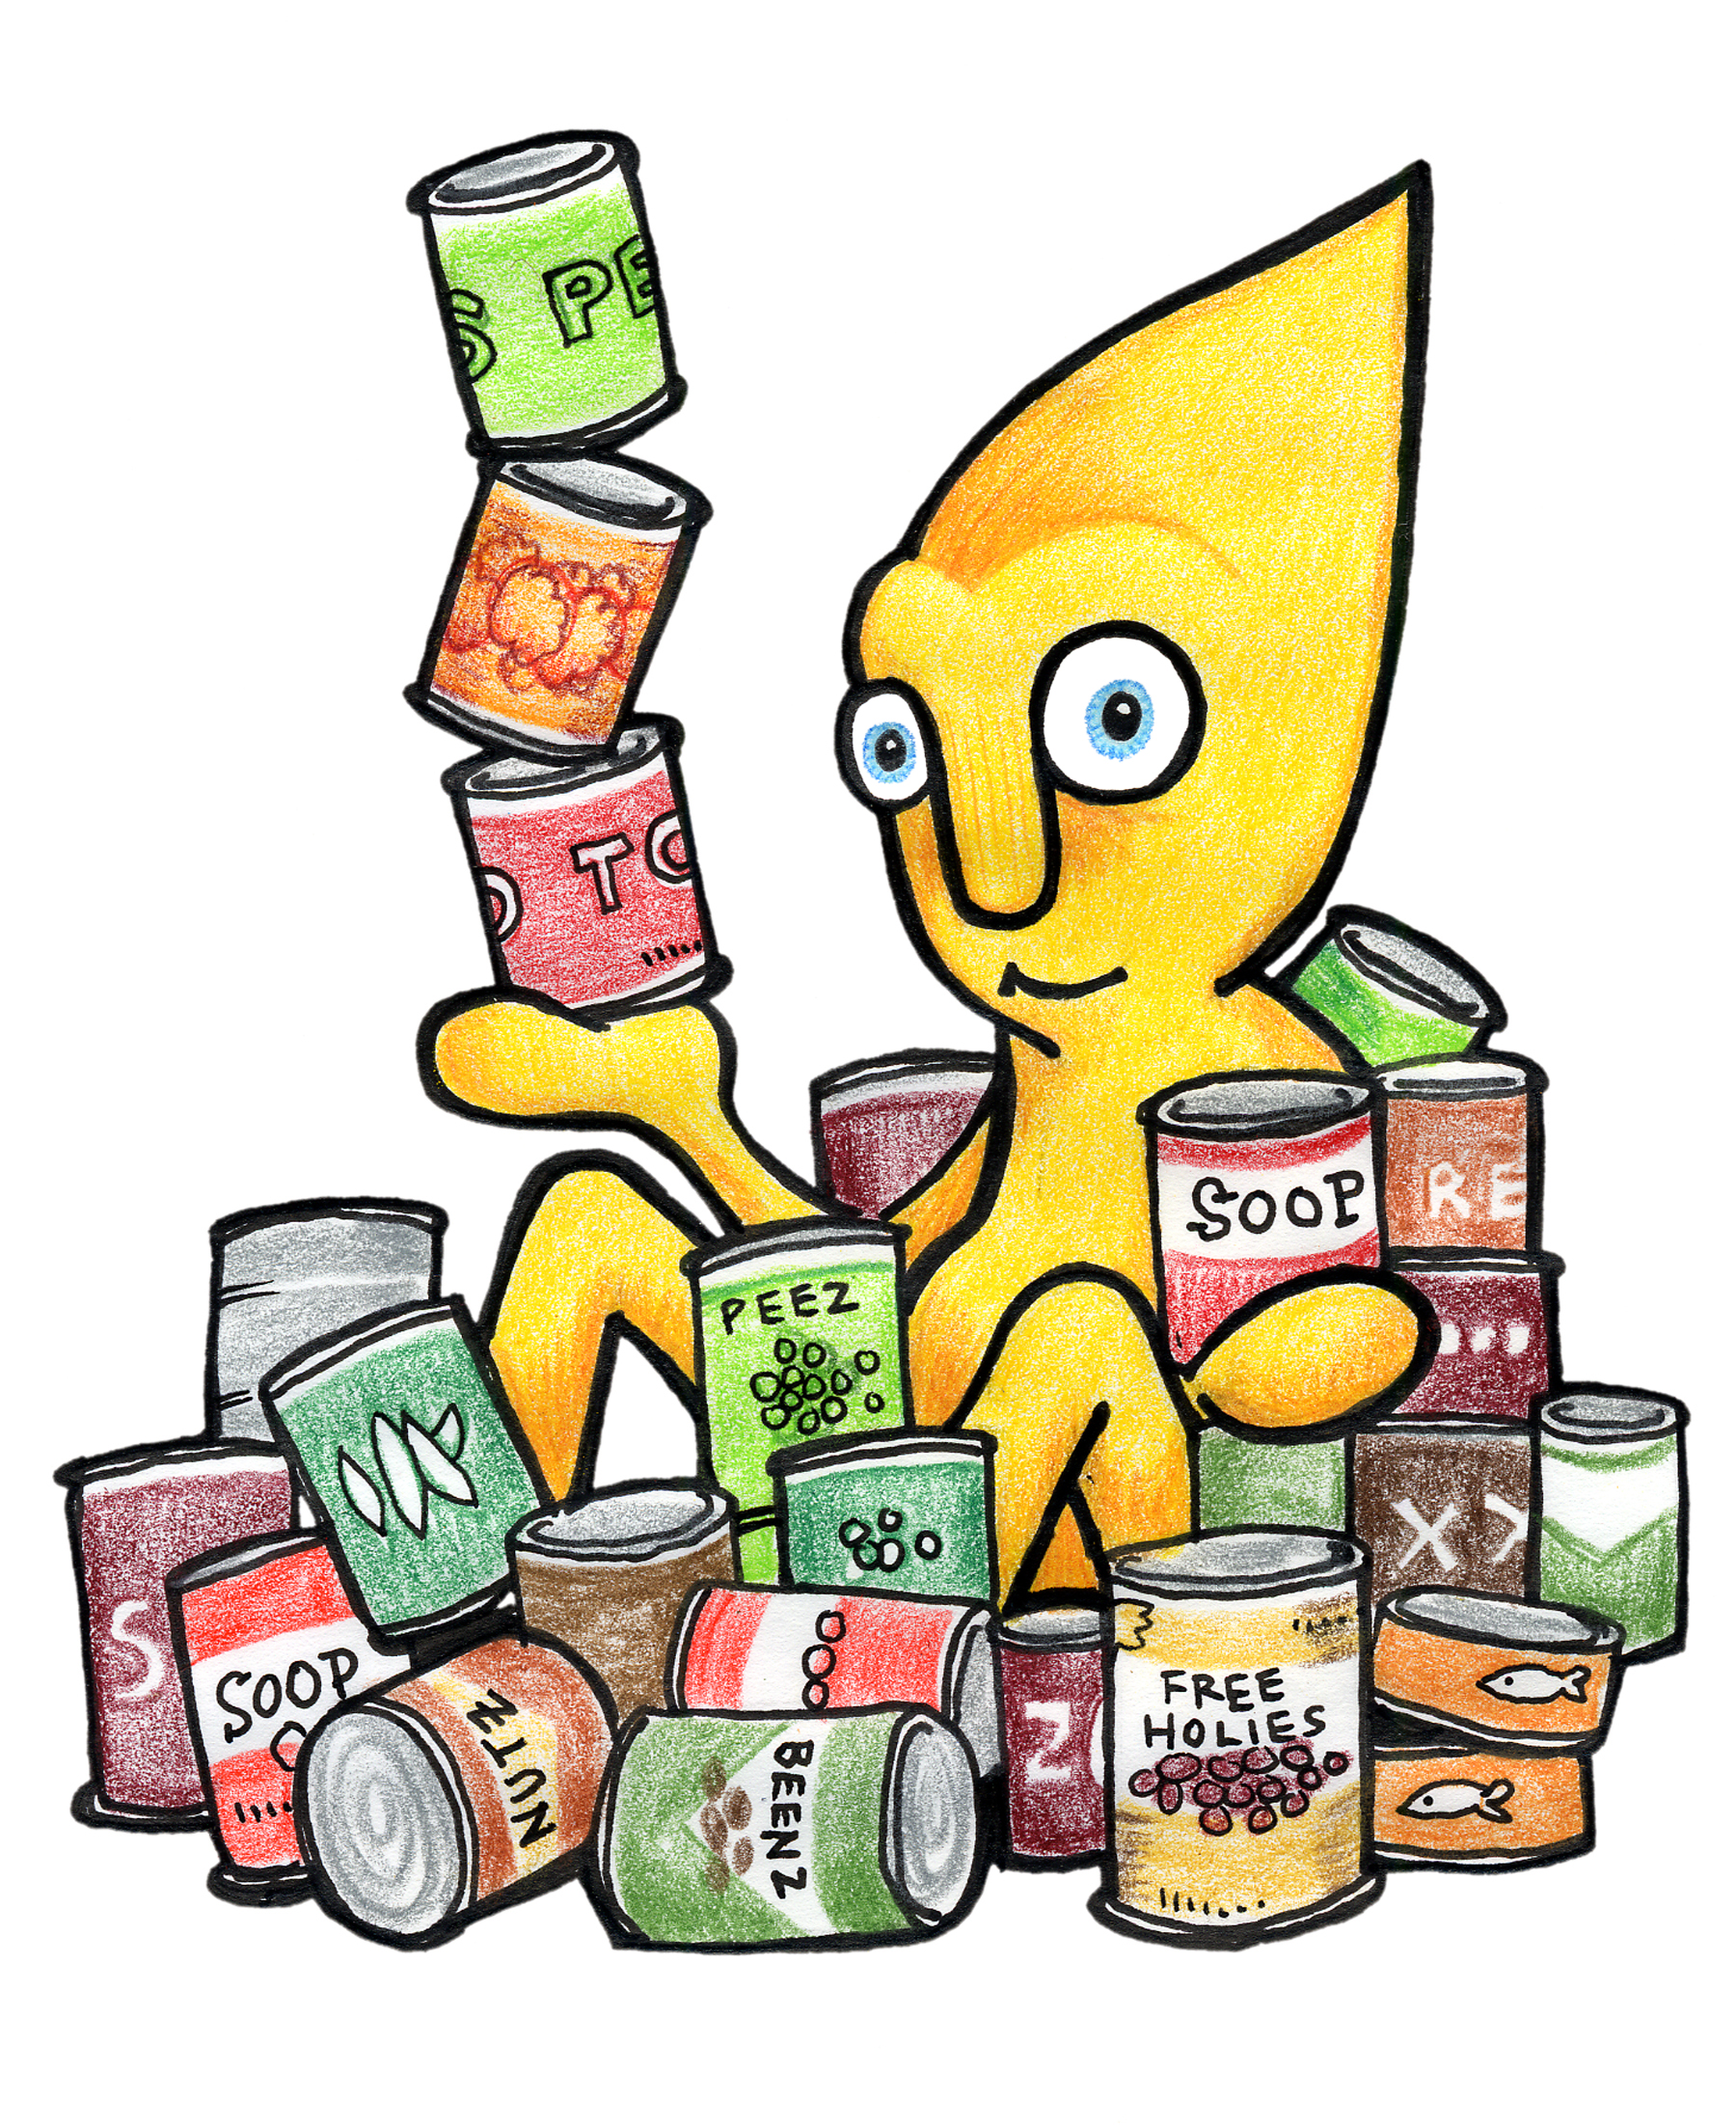 Animated canned food clipart picture freeuse download Canned food food drive clip art 2 - ClipartBarn picture freeuse download